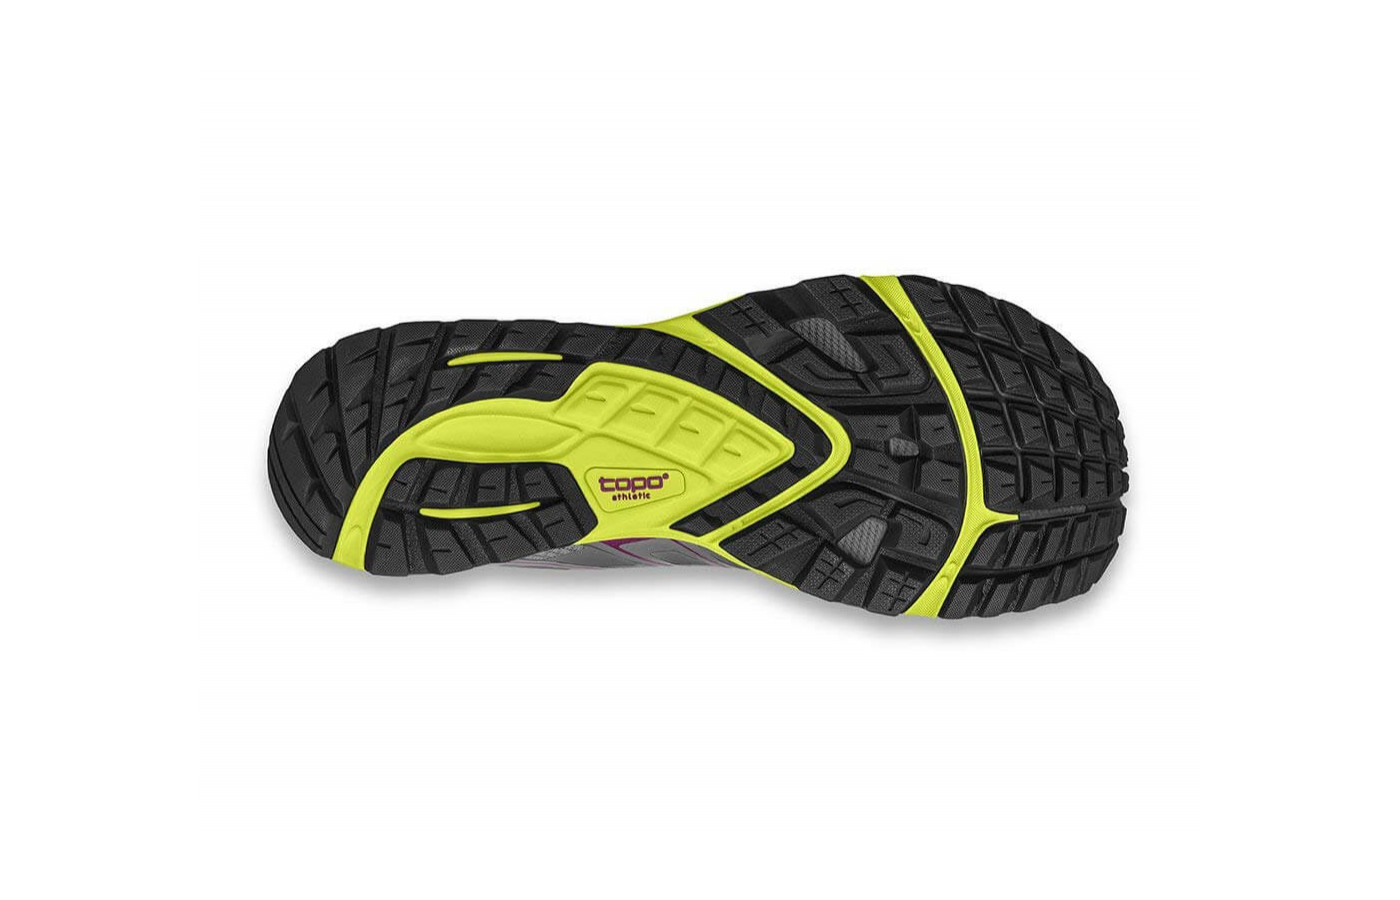 The Runventure 2 features a rubber outsole with multi-directional lugs